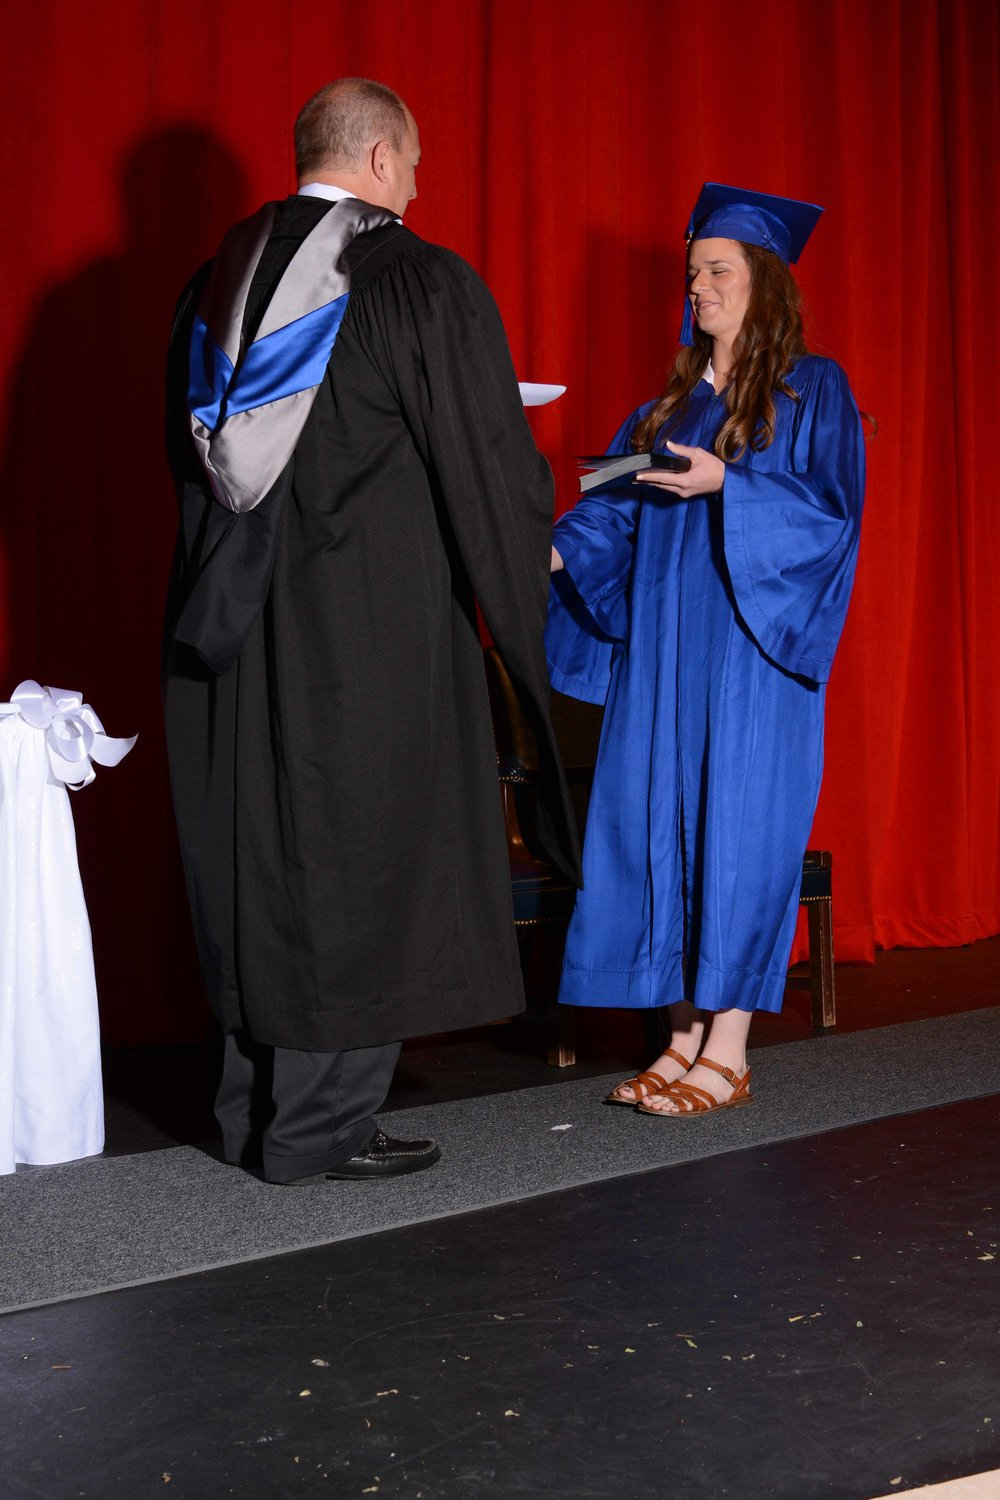 May15 HardingGraduation57.jpg